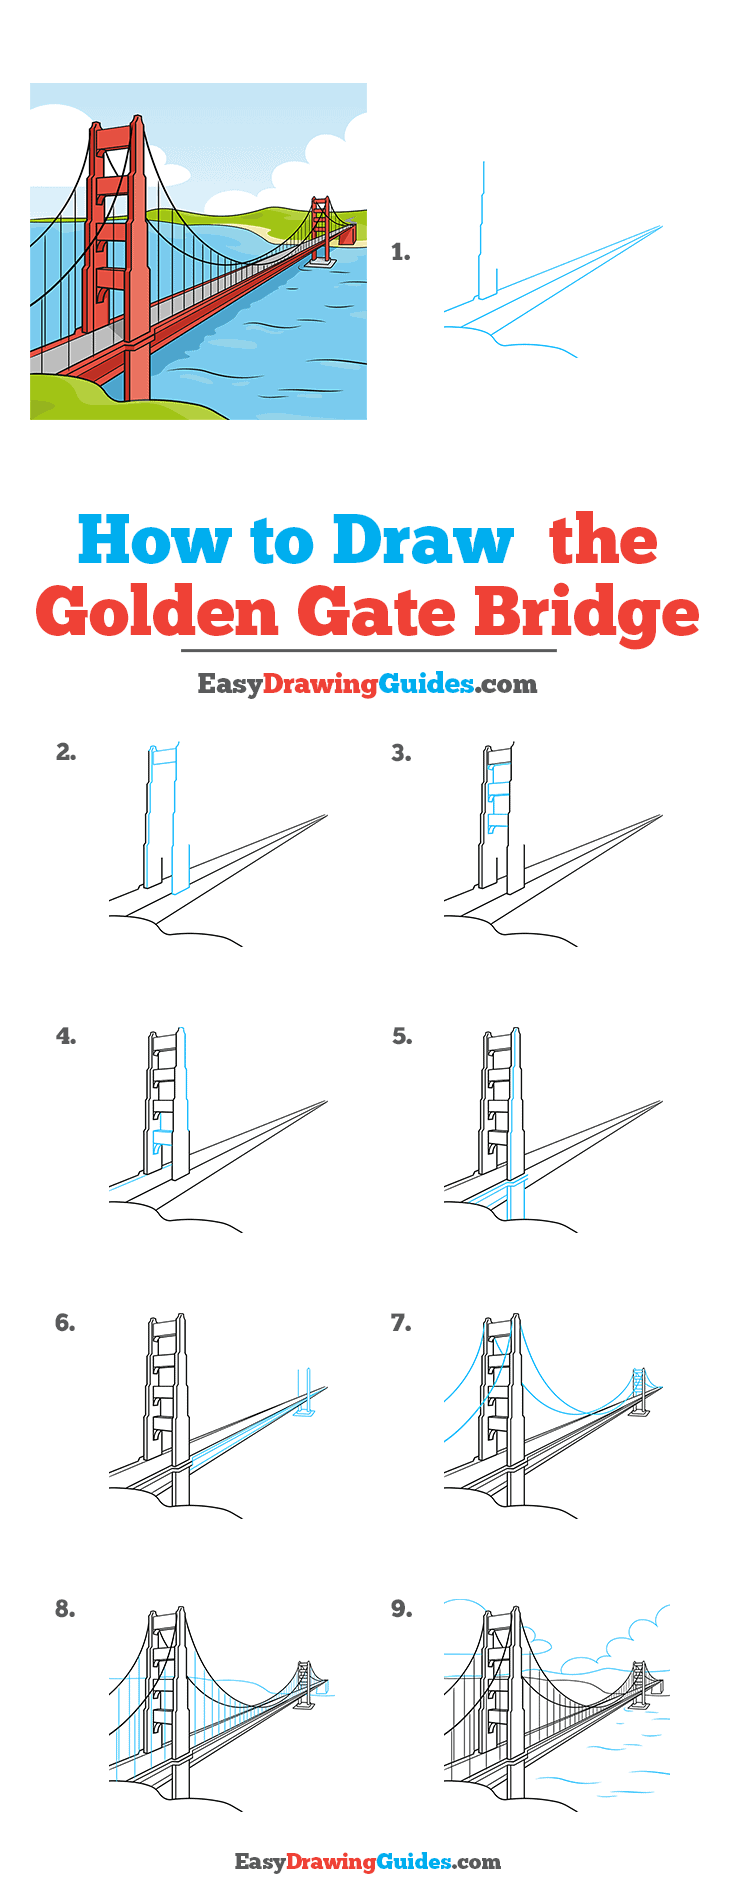 How to Draw the Golden Gate Bridge Step by Step Tutorial Image